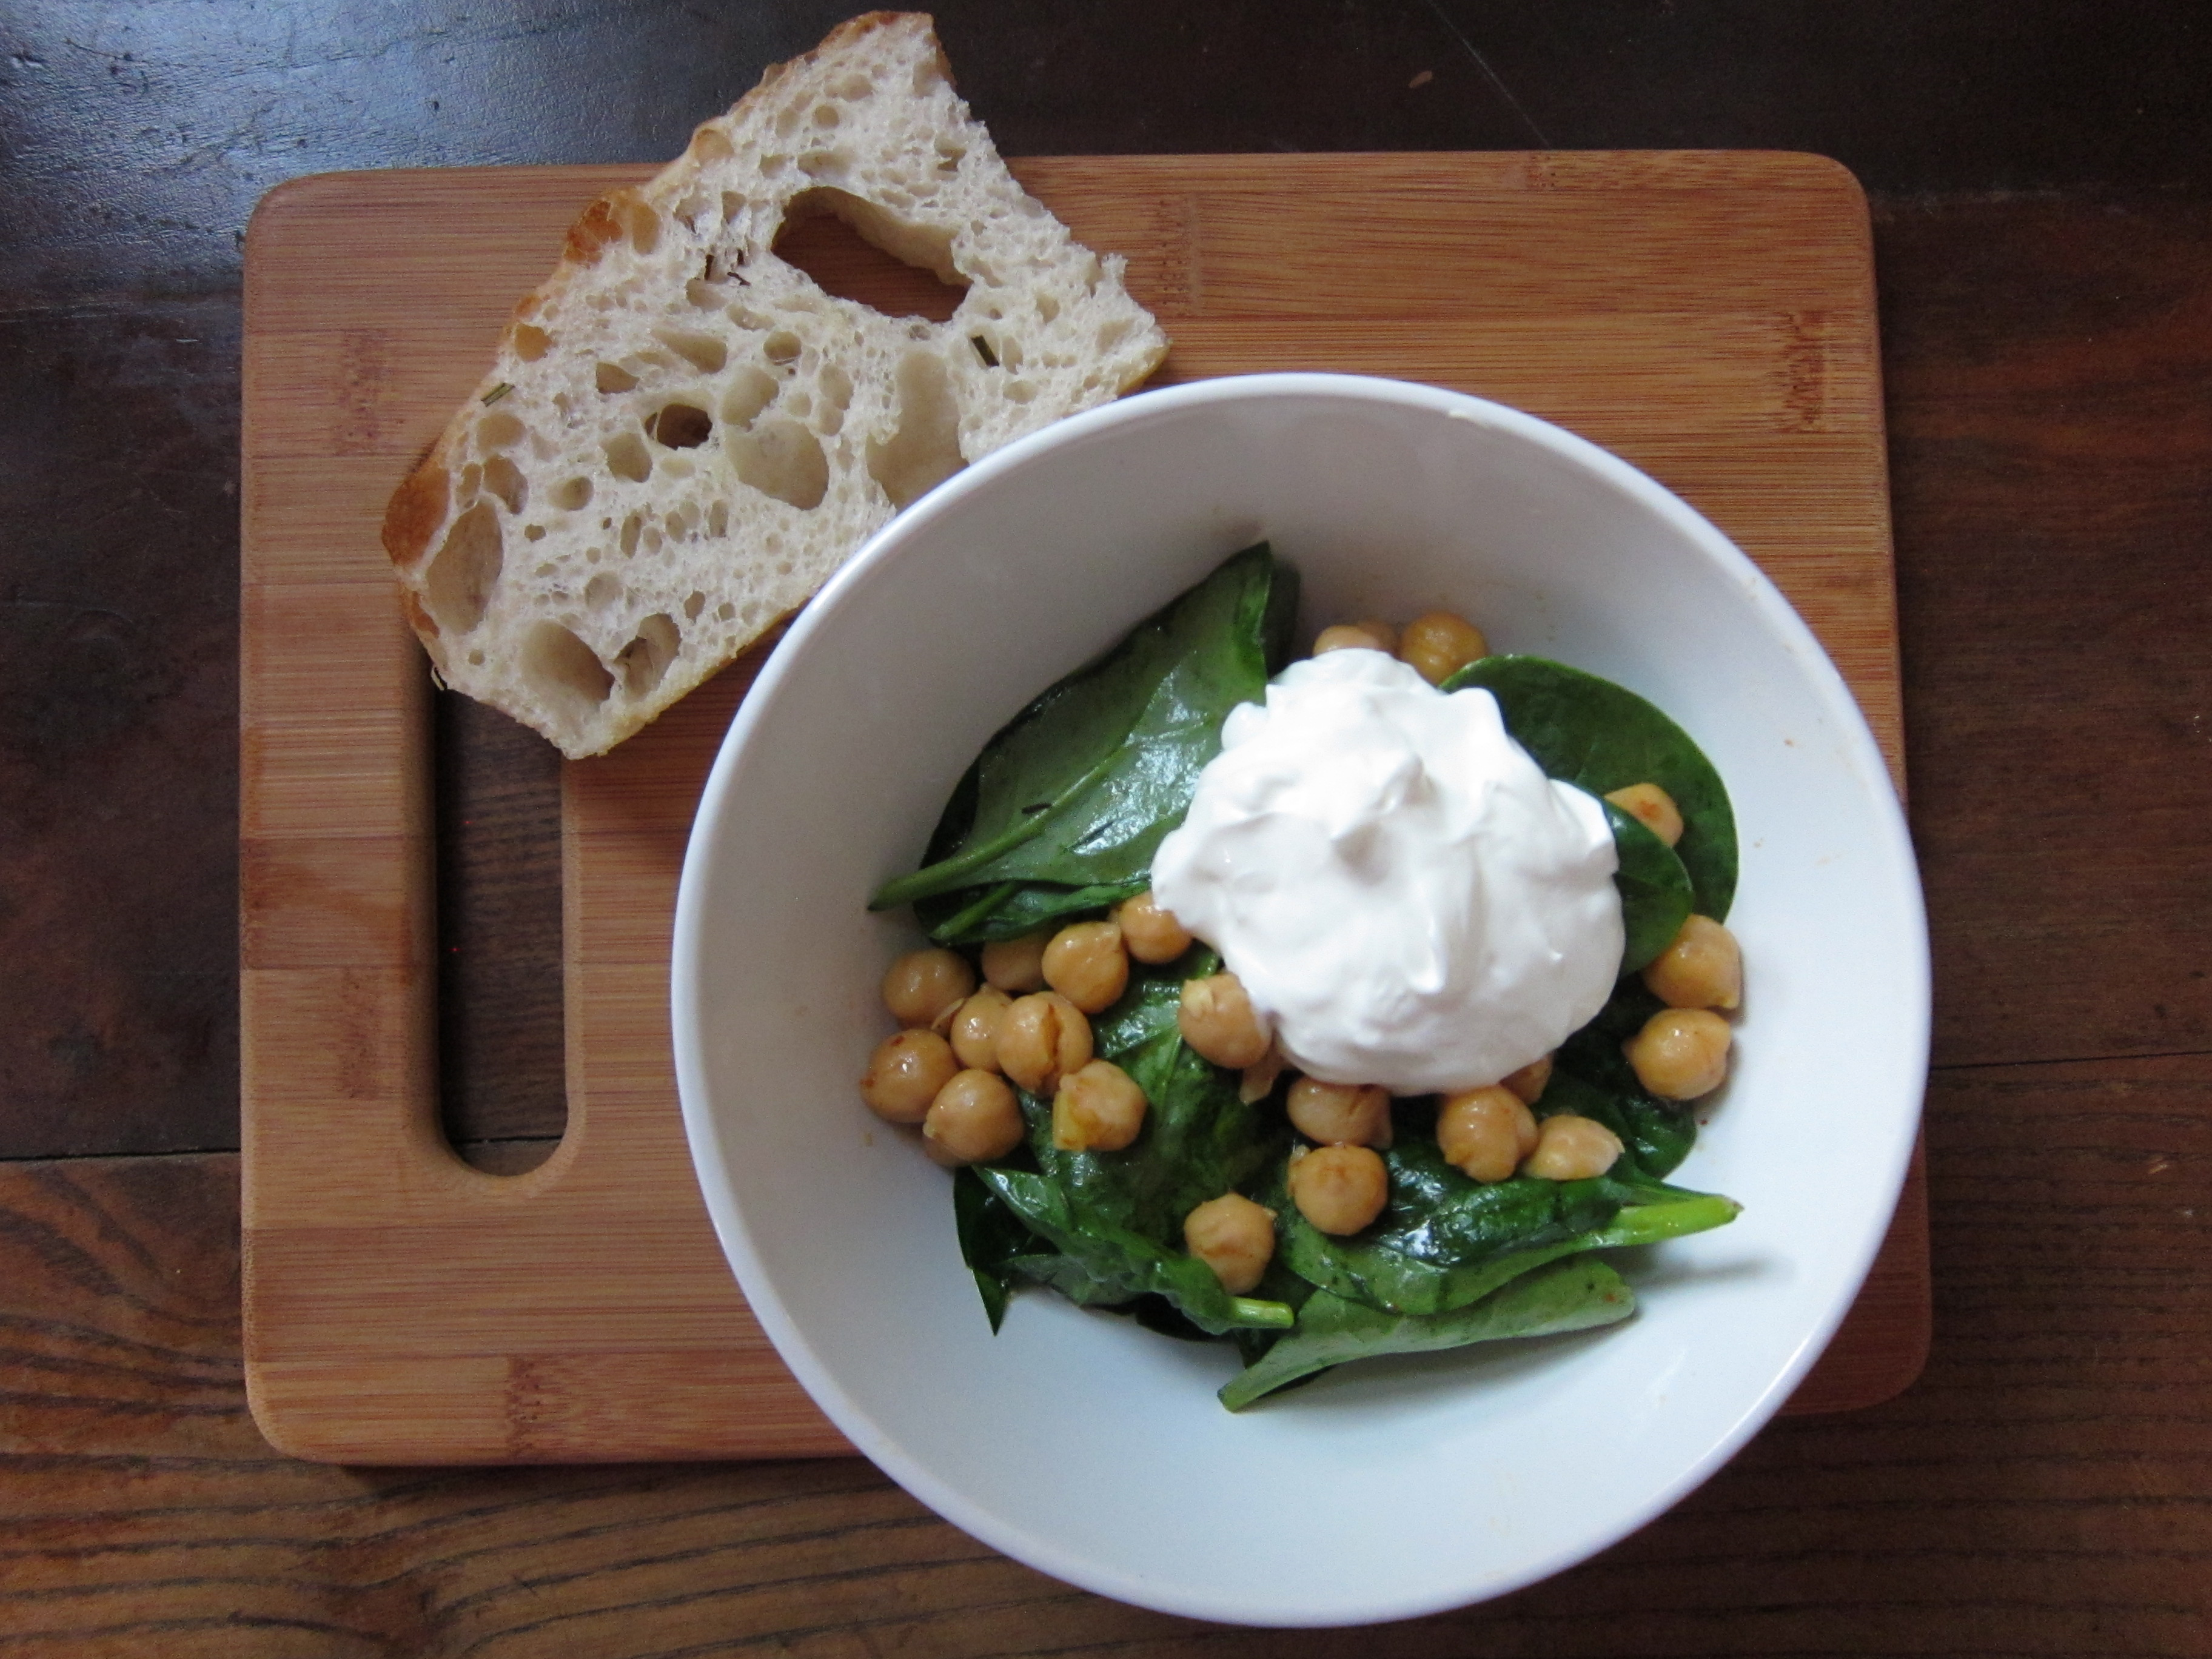 soup harissa chickpeas recipe spinach and chickpeas view harissa ...